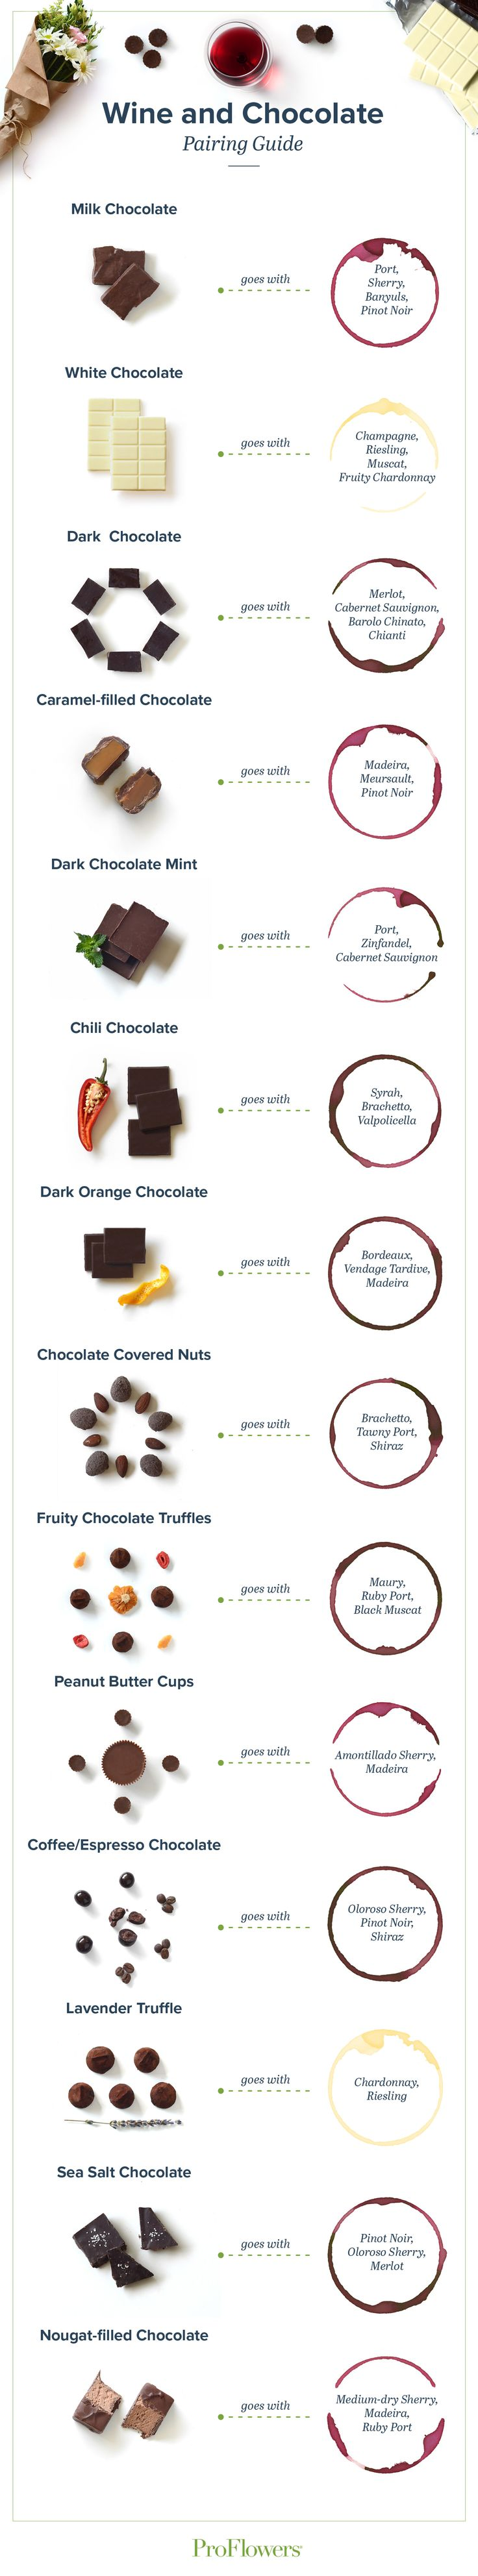 Wine and Chocolate Pairings to Impress Your Guests - ProFlowers Blog